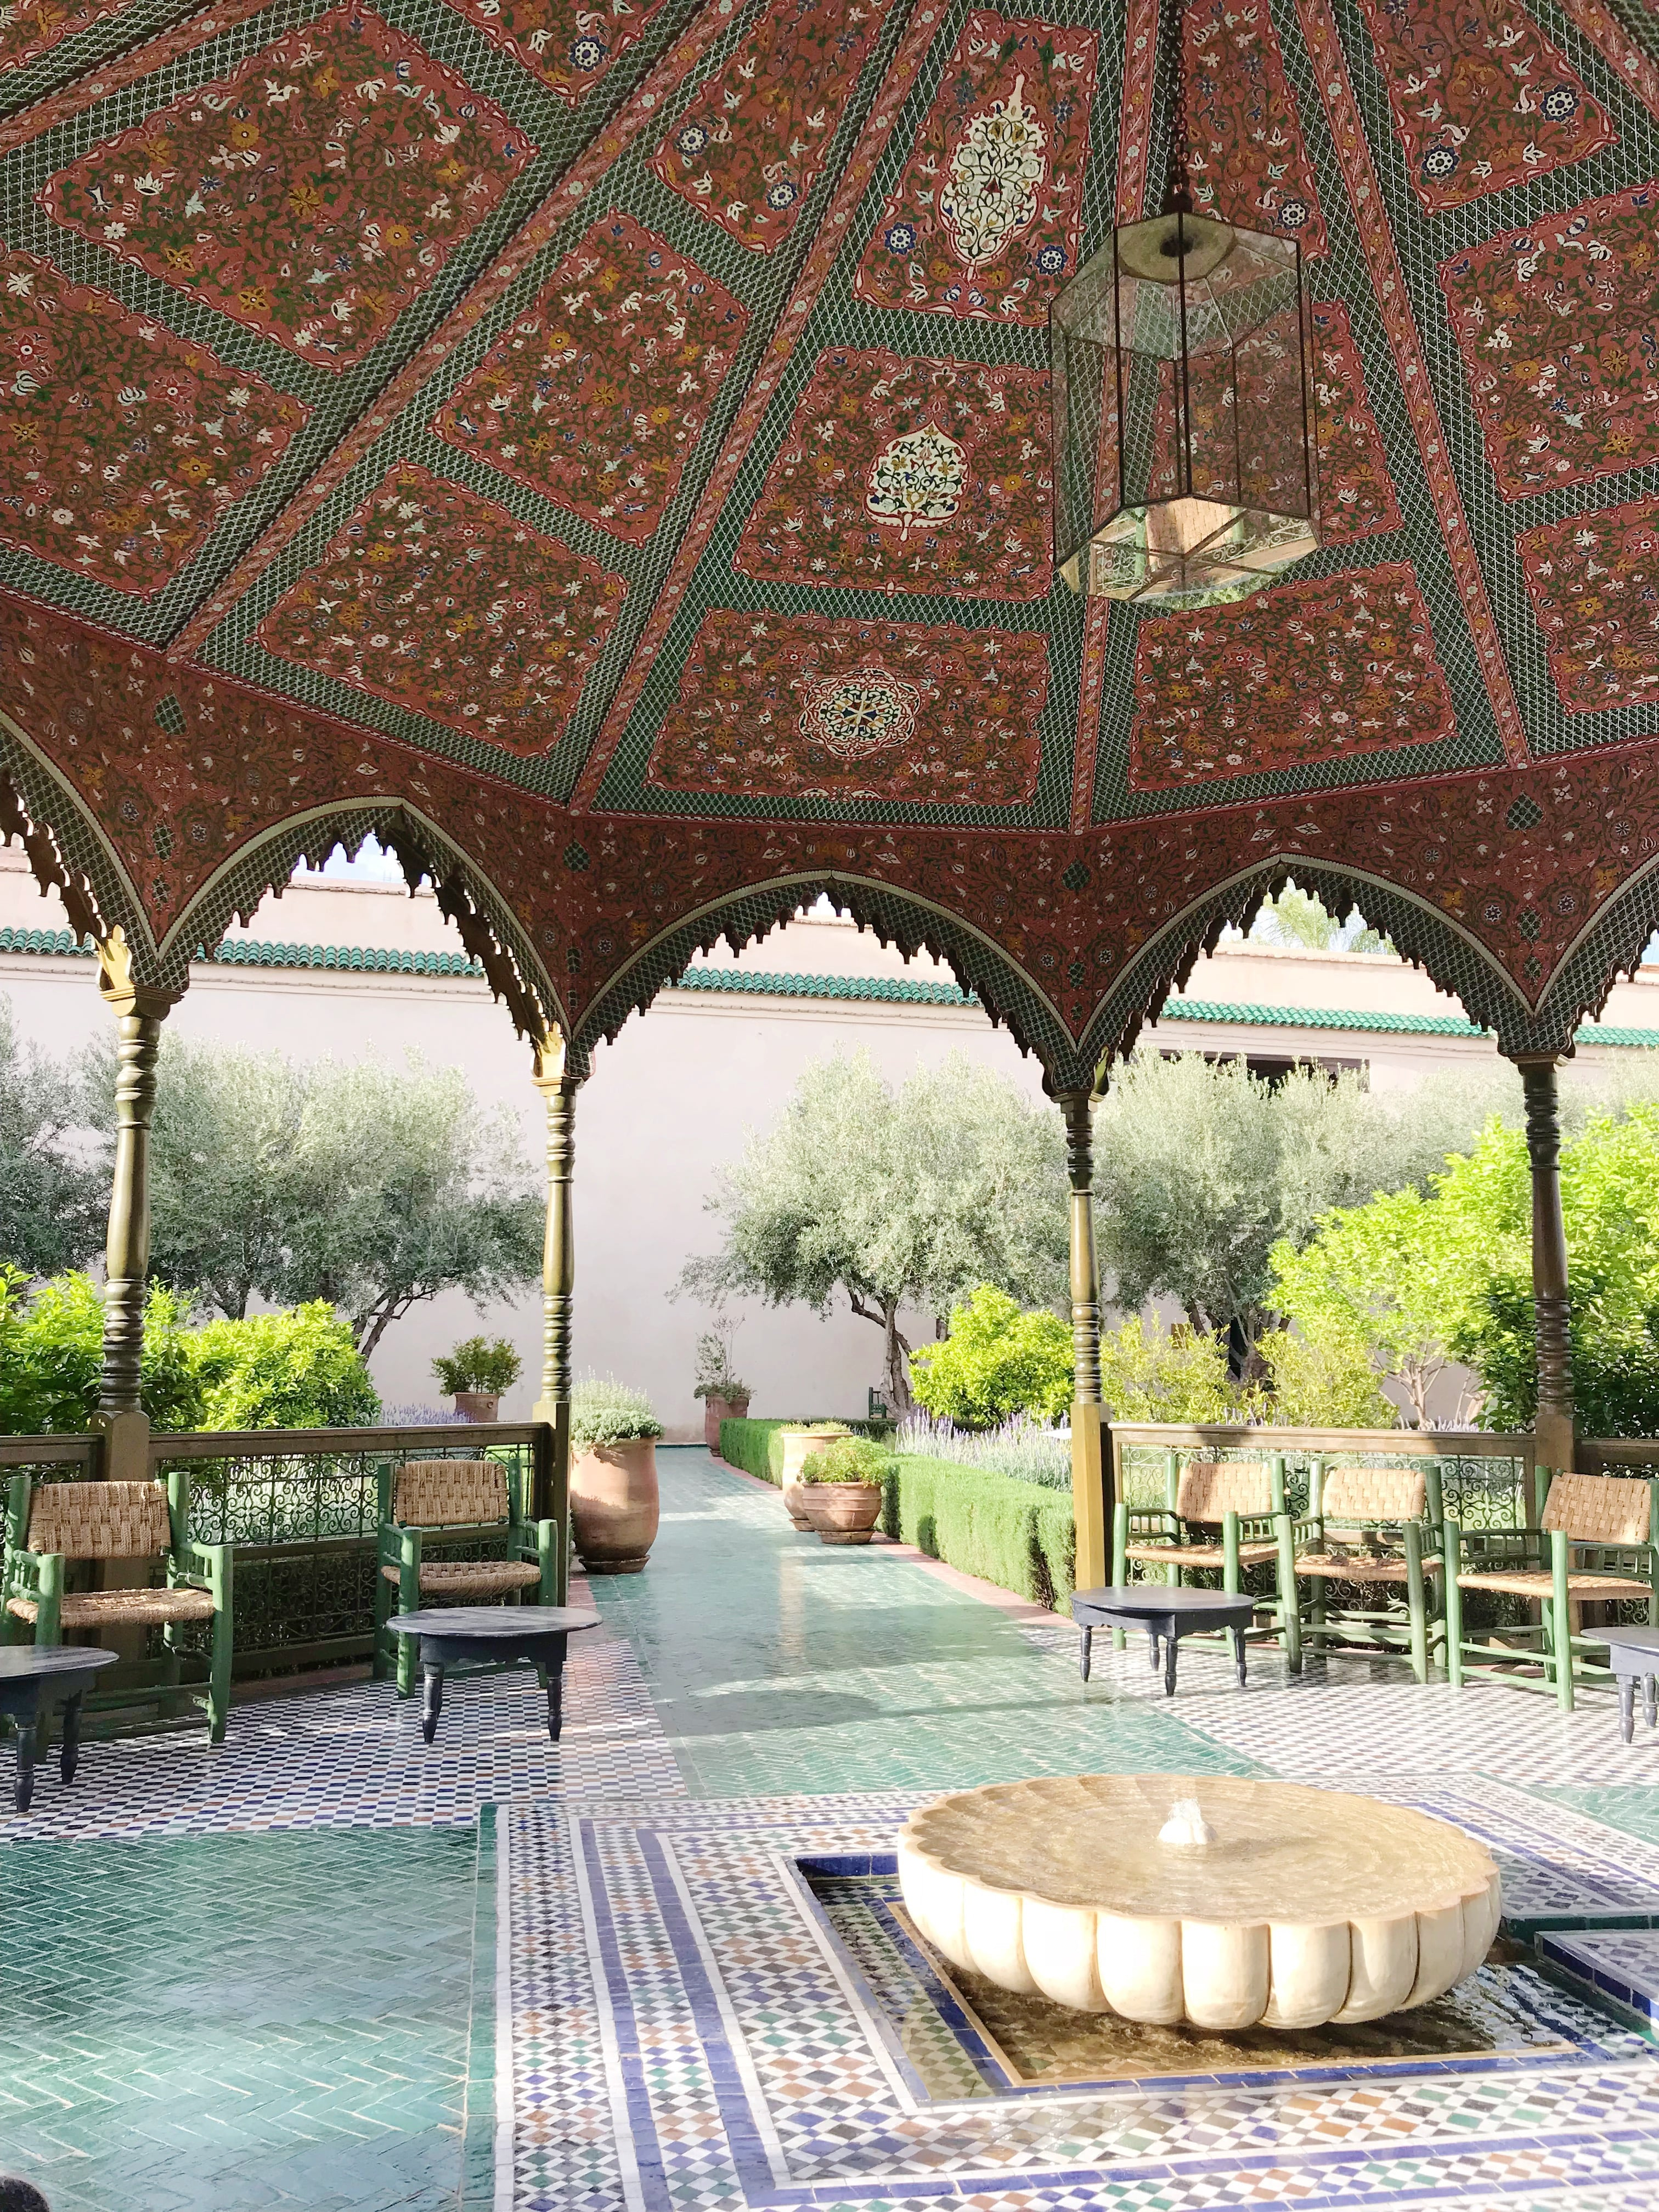 MARRAKECH TRAVEL GUIDE + TIPS | Le Jardin Secret - Marrakech Travel Guide - Marrakech Travel - Marrakech Morocco - Shopping In Marrakech - What To See In Marrakech - What To Do In Marrakech - Marrakech Travel Blog - Marrakech Hotels - Marrakech Weather - Marrakesh - Morocco Travel Blog - #morocco #travel #marrakech